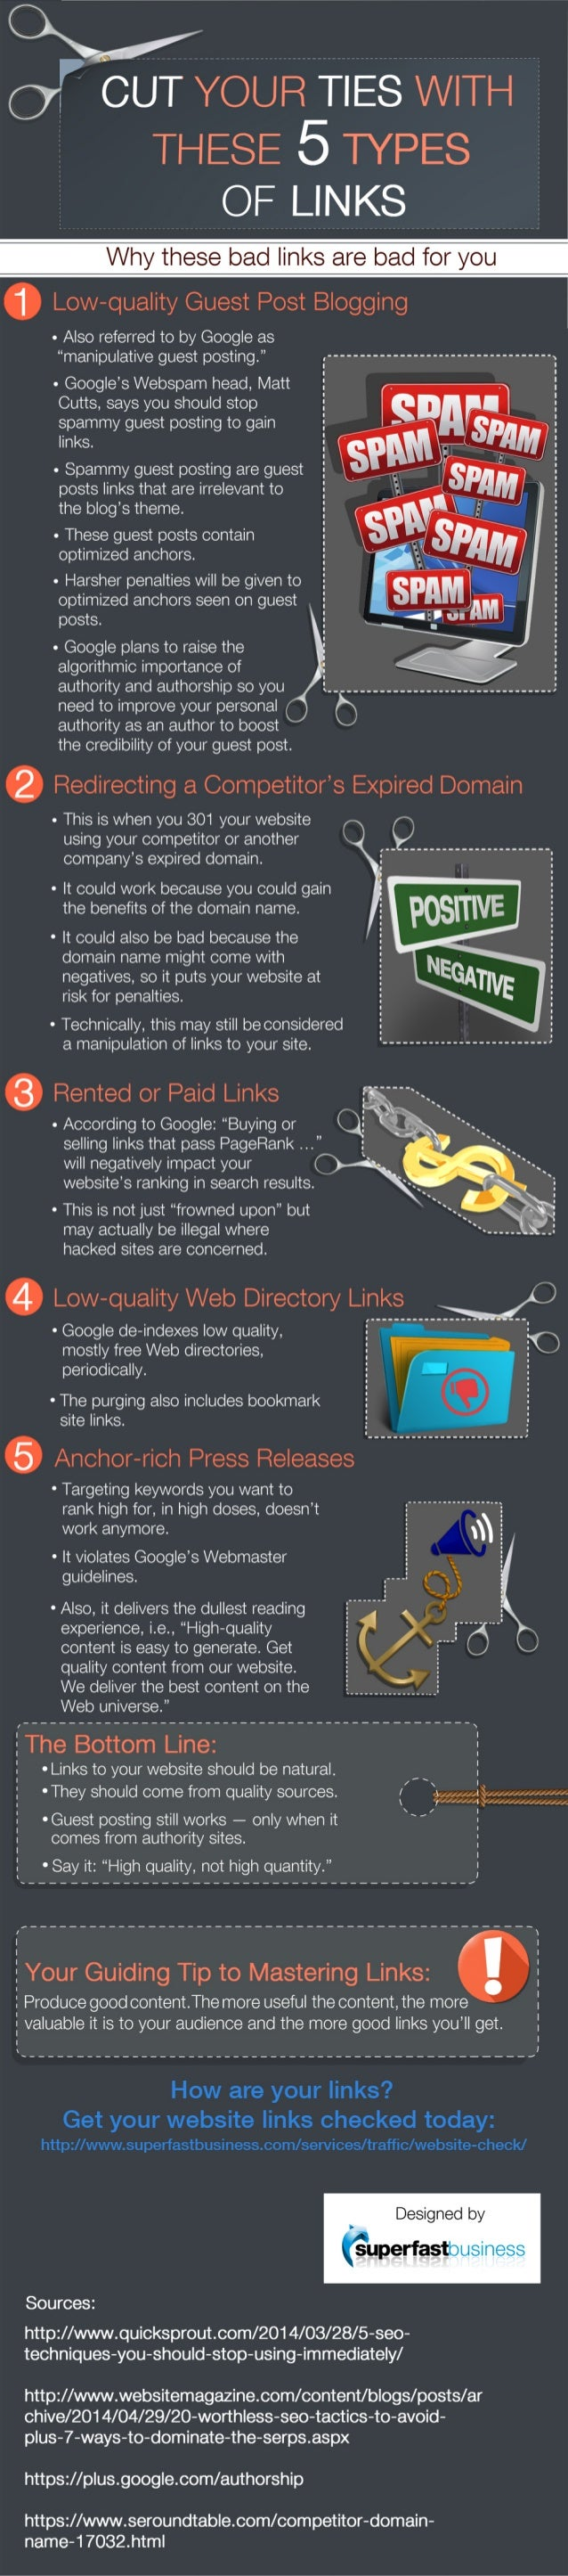 ©/   g' CUT YOUR TIES WITH  THESE 5 TYPES OF LINKS     Why these bad links are bad for you  O Low-quality Guest Post Blogg...